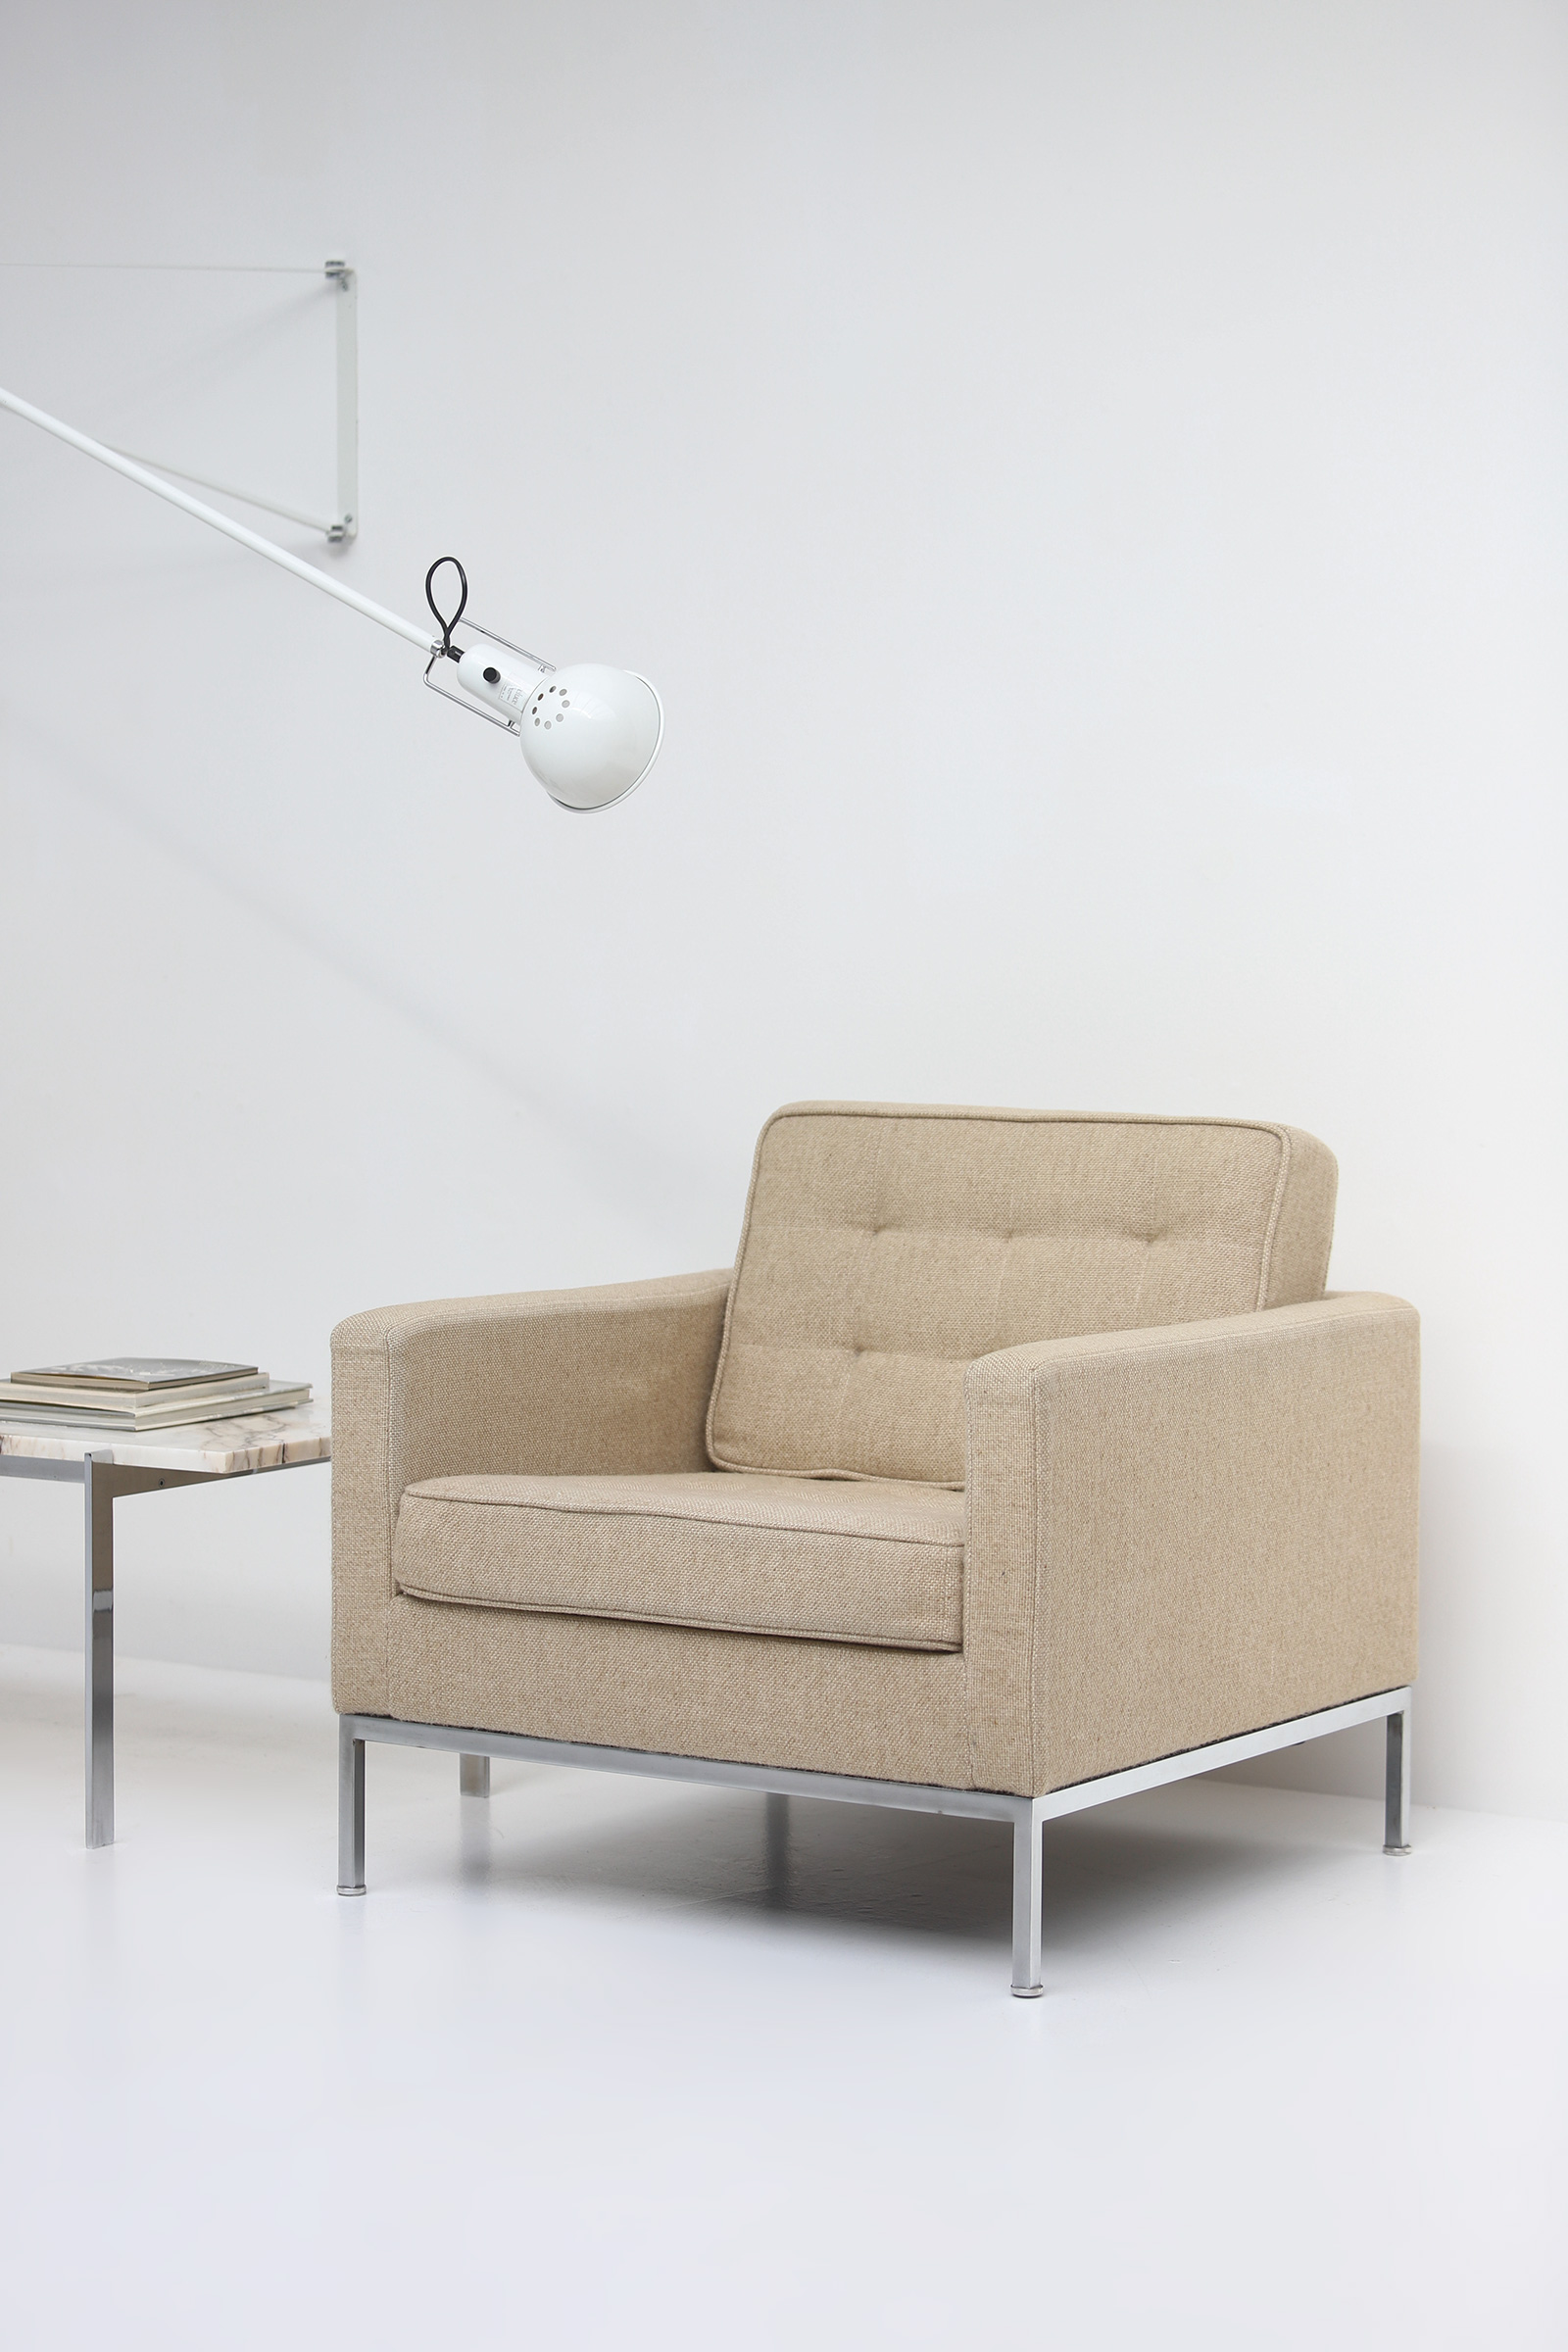 Florence Knoll Arm Chairsimage 5